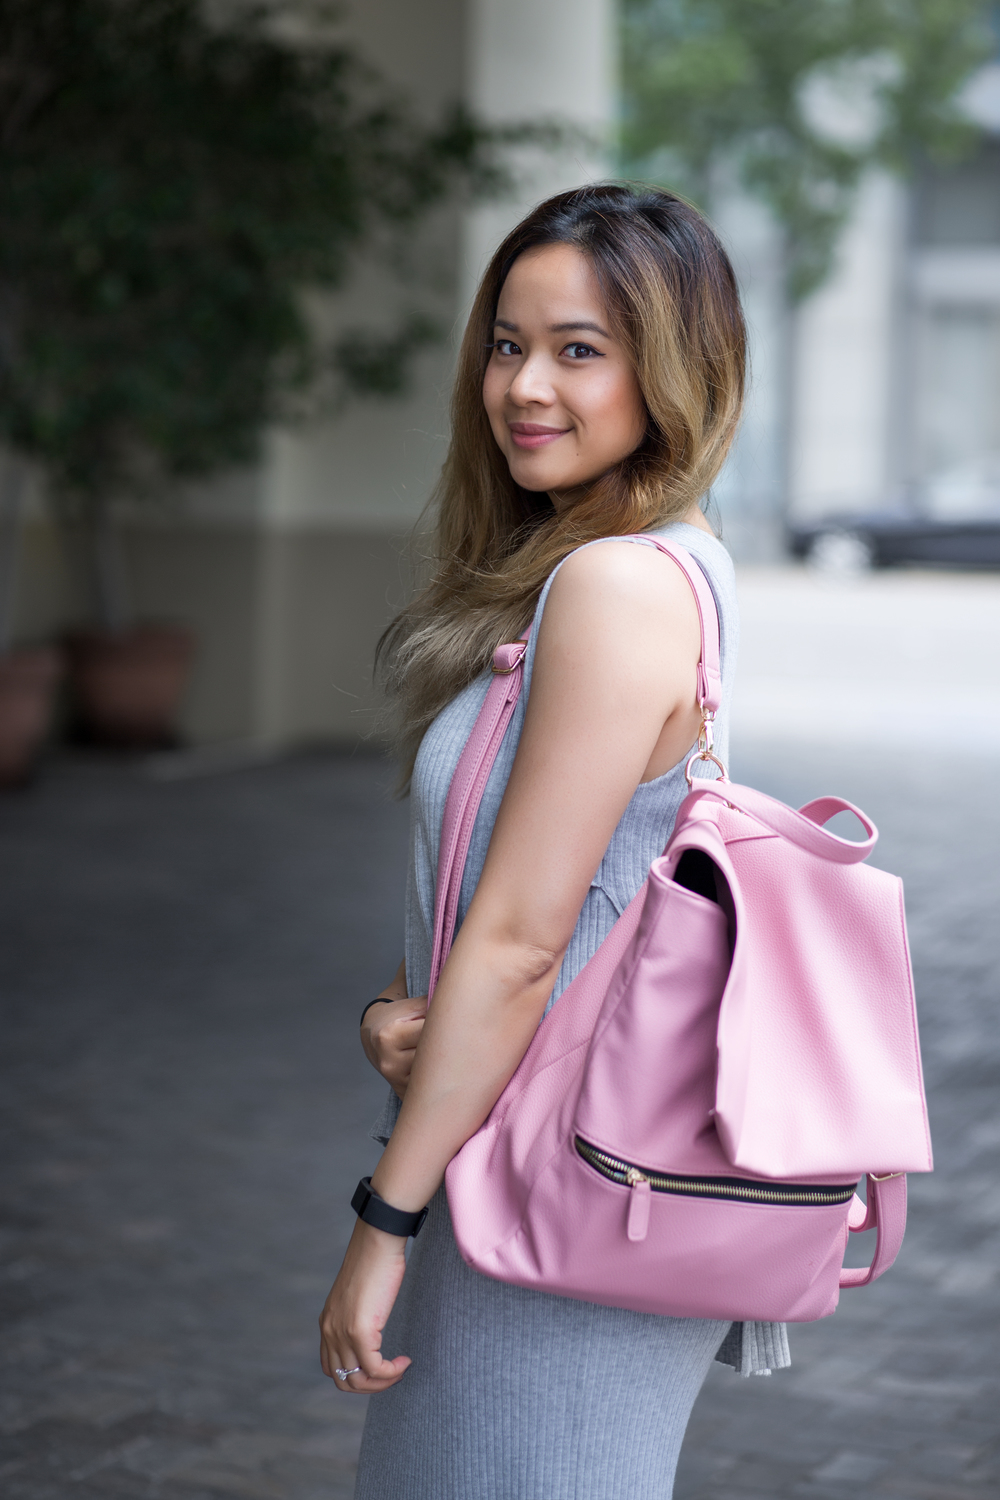 Backpack: ASOS; similar: here, here, and here. Dress: ASOS, similar: here, here.